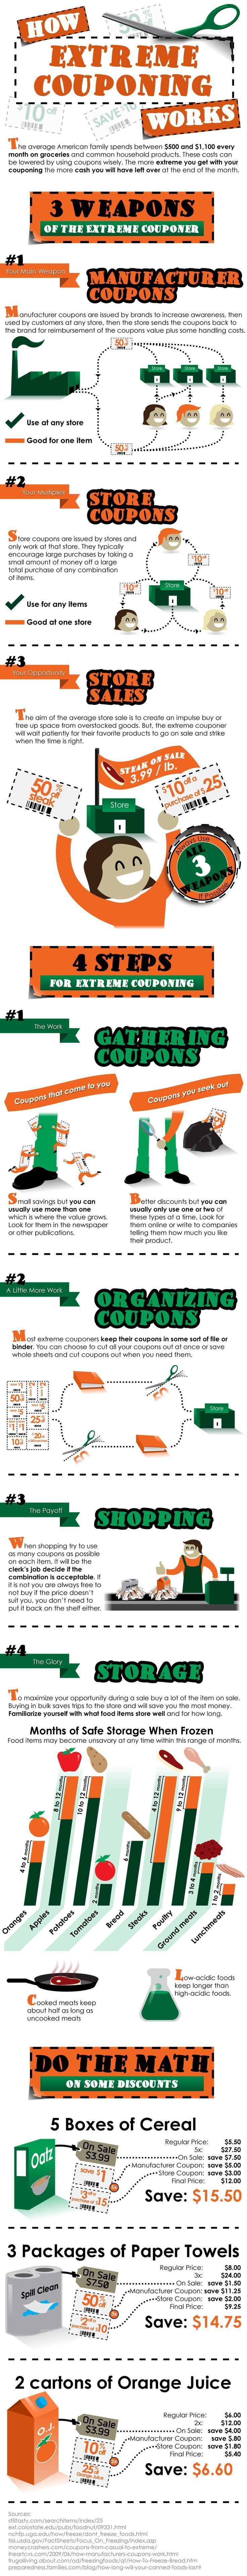 How Extreme Couponing Works: Ever wonder how extreme couponers do it? Saving all that money? Stockpiling all those goods? Check out this infographic & find out.